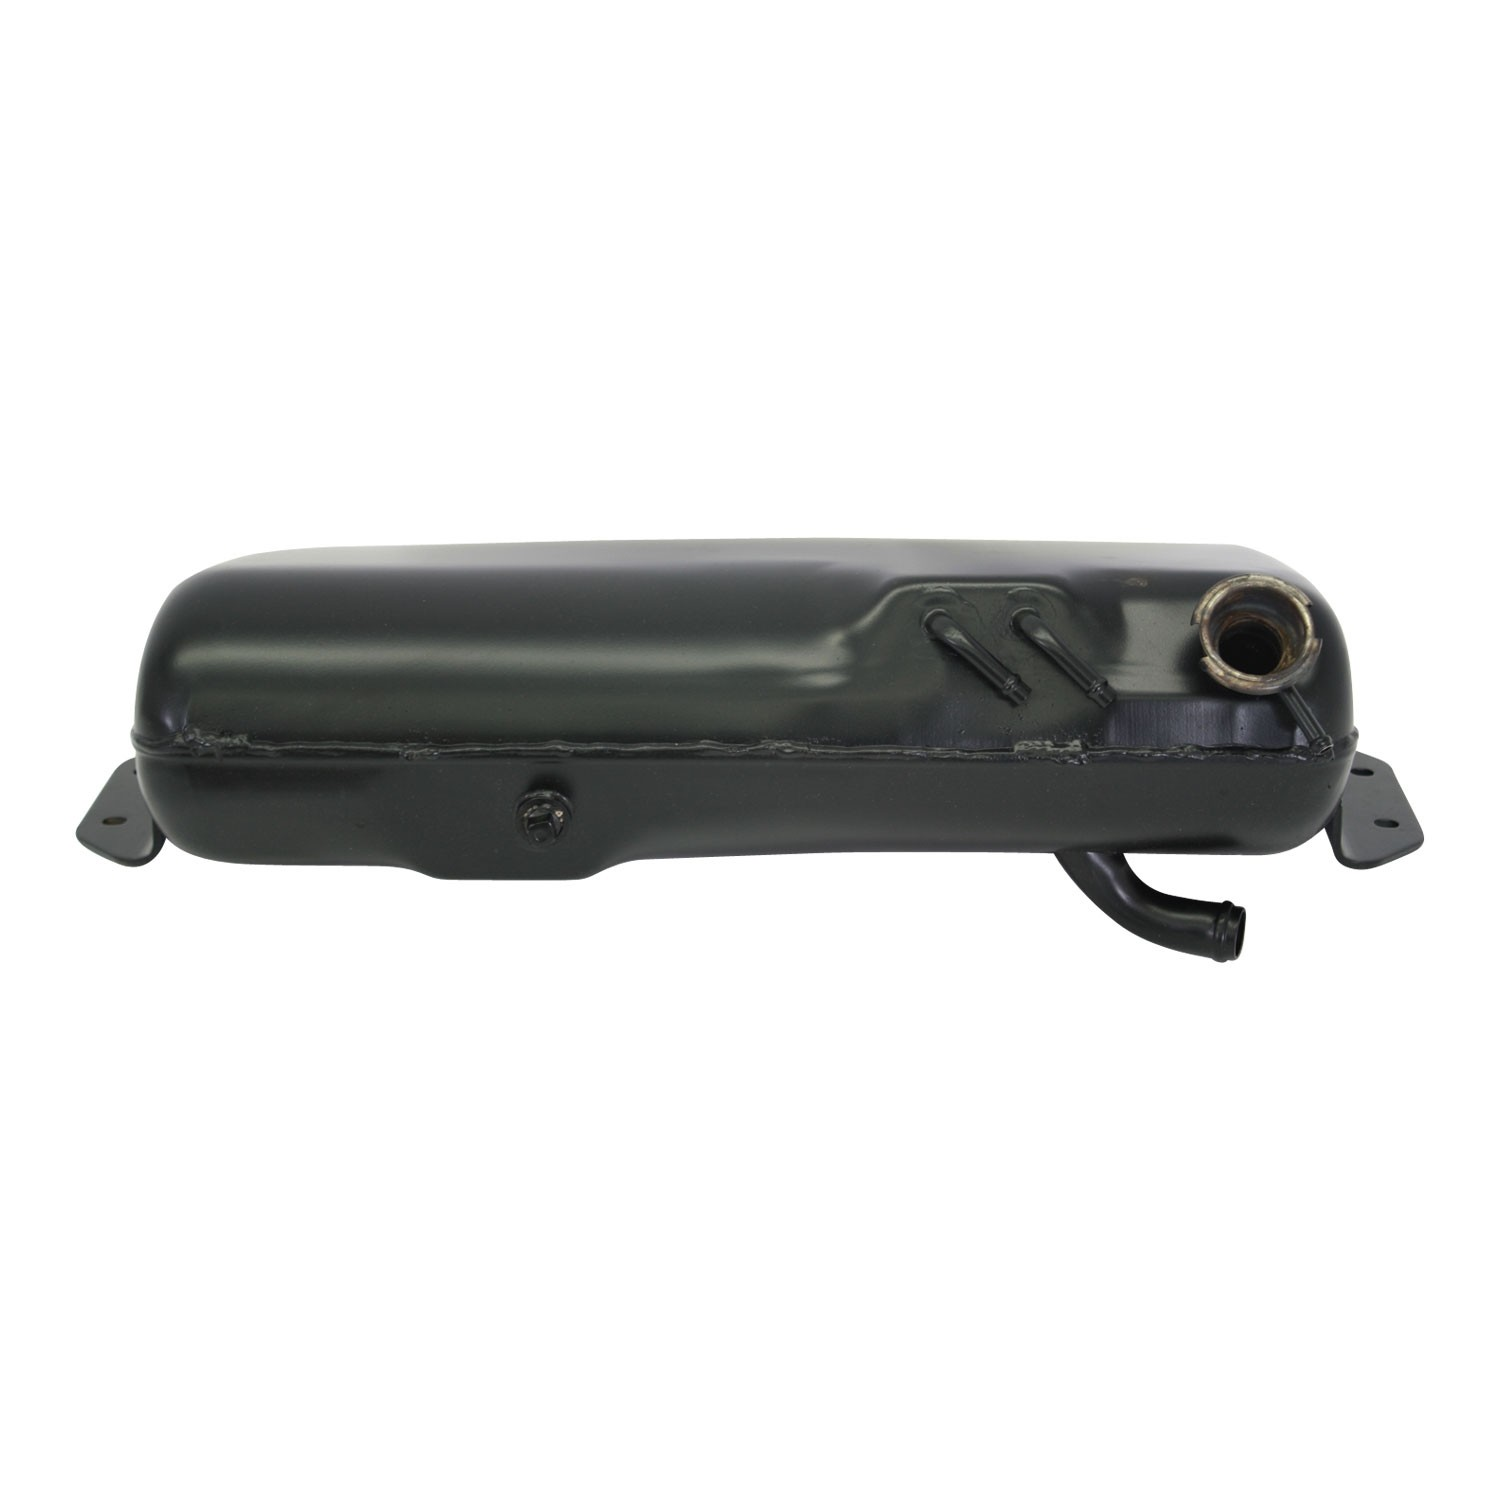 Freightliner Sterling Classic Acterra Surge Tank OEM A0523063000 Front View.